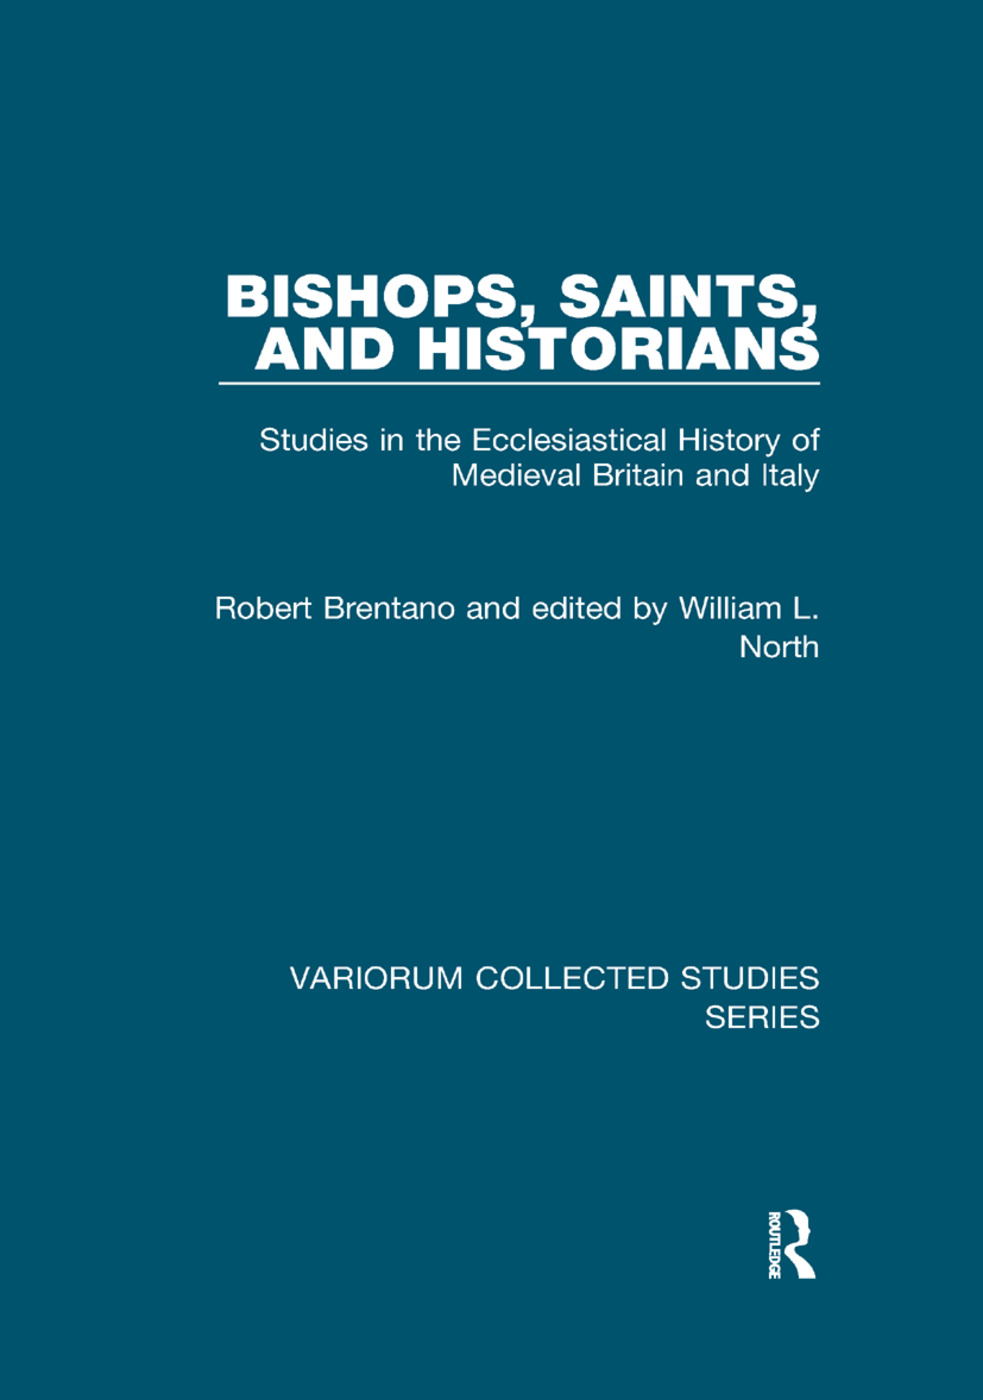 Bishops, Saints, and Historians: Studies in the Ecclesiastical History of Medieval Britain and Italy book cover